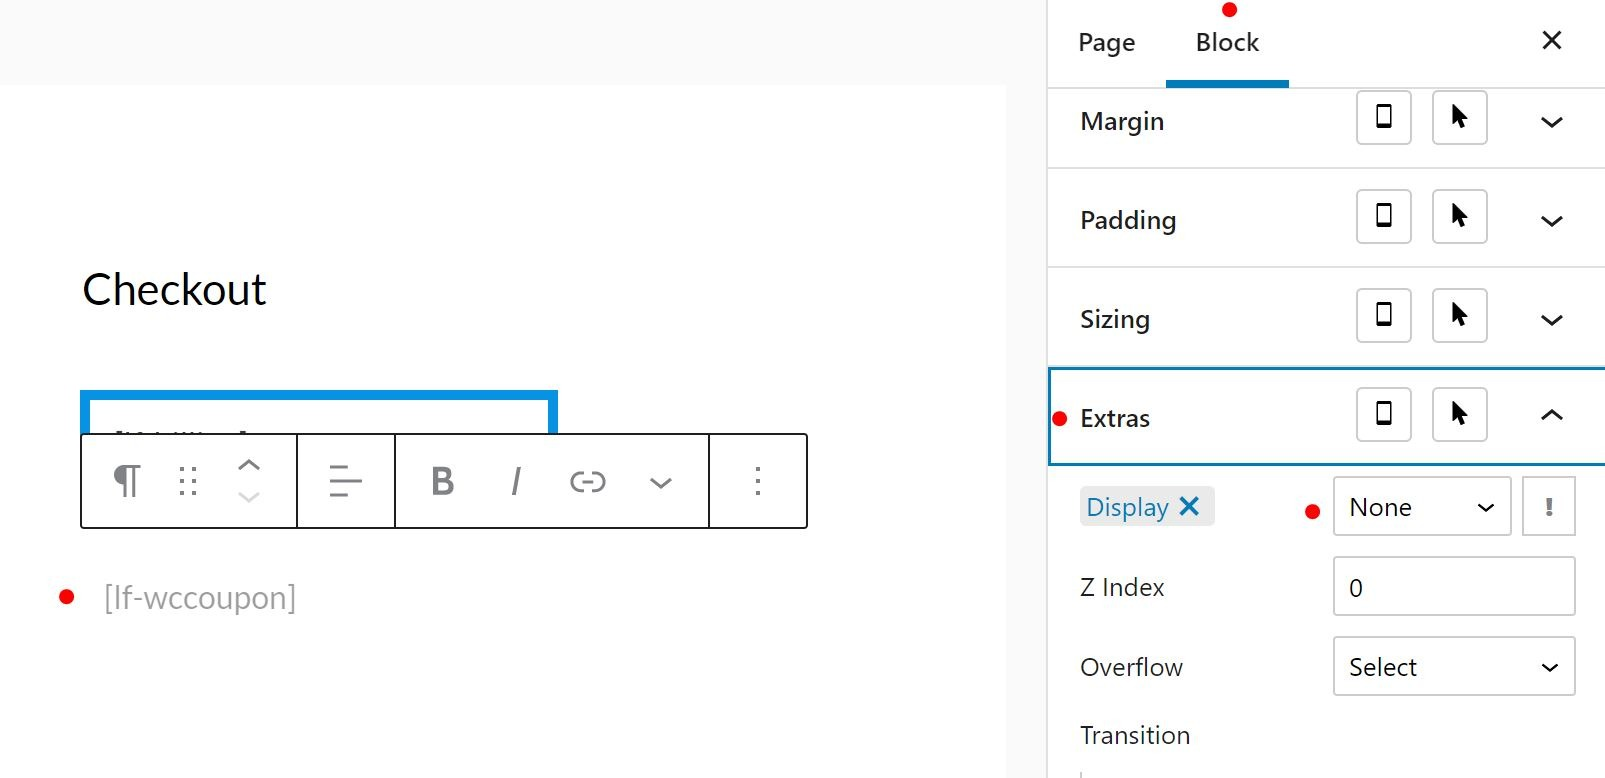 LaunchFlows Block Visibility With Editor Plus